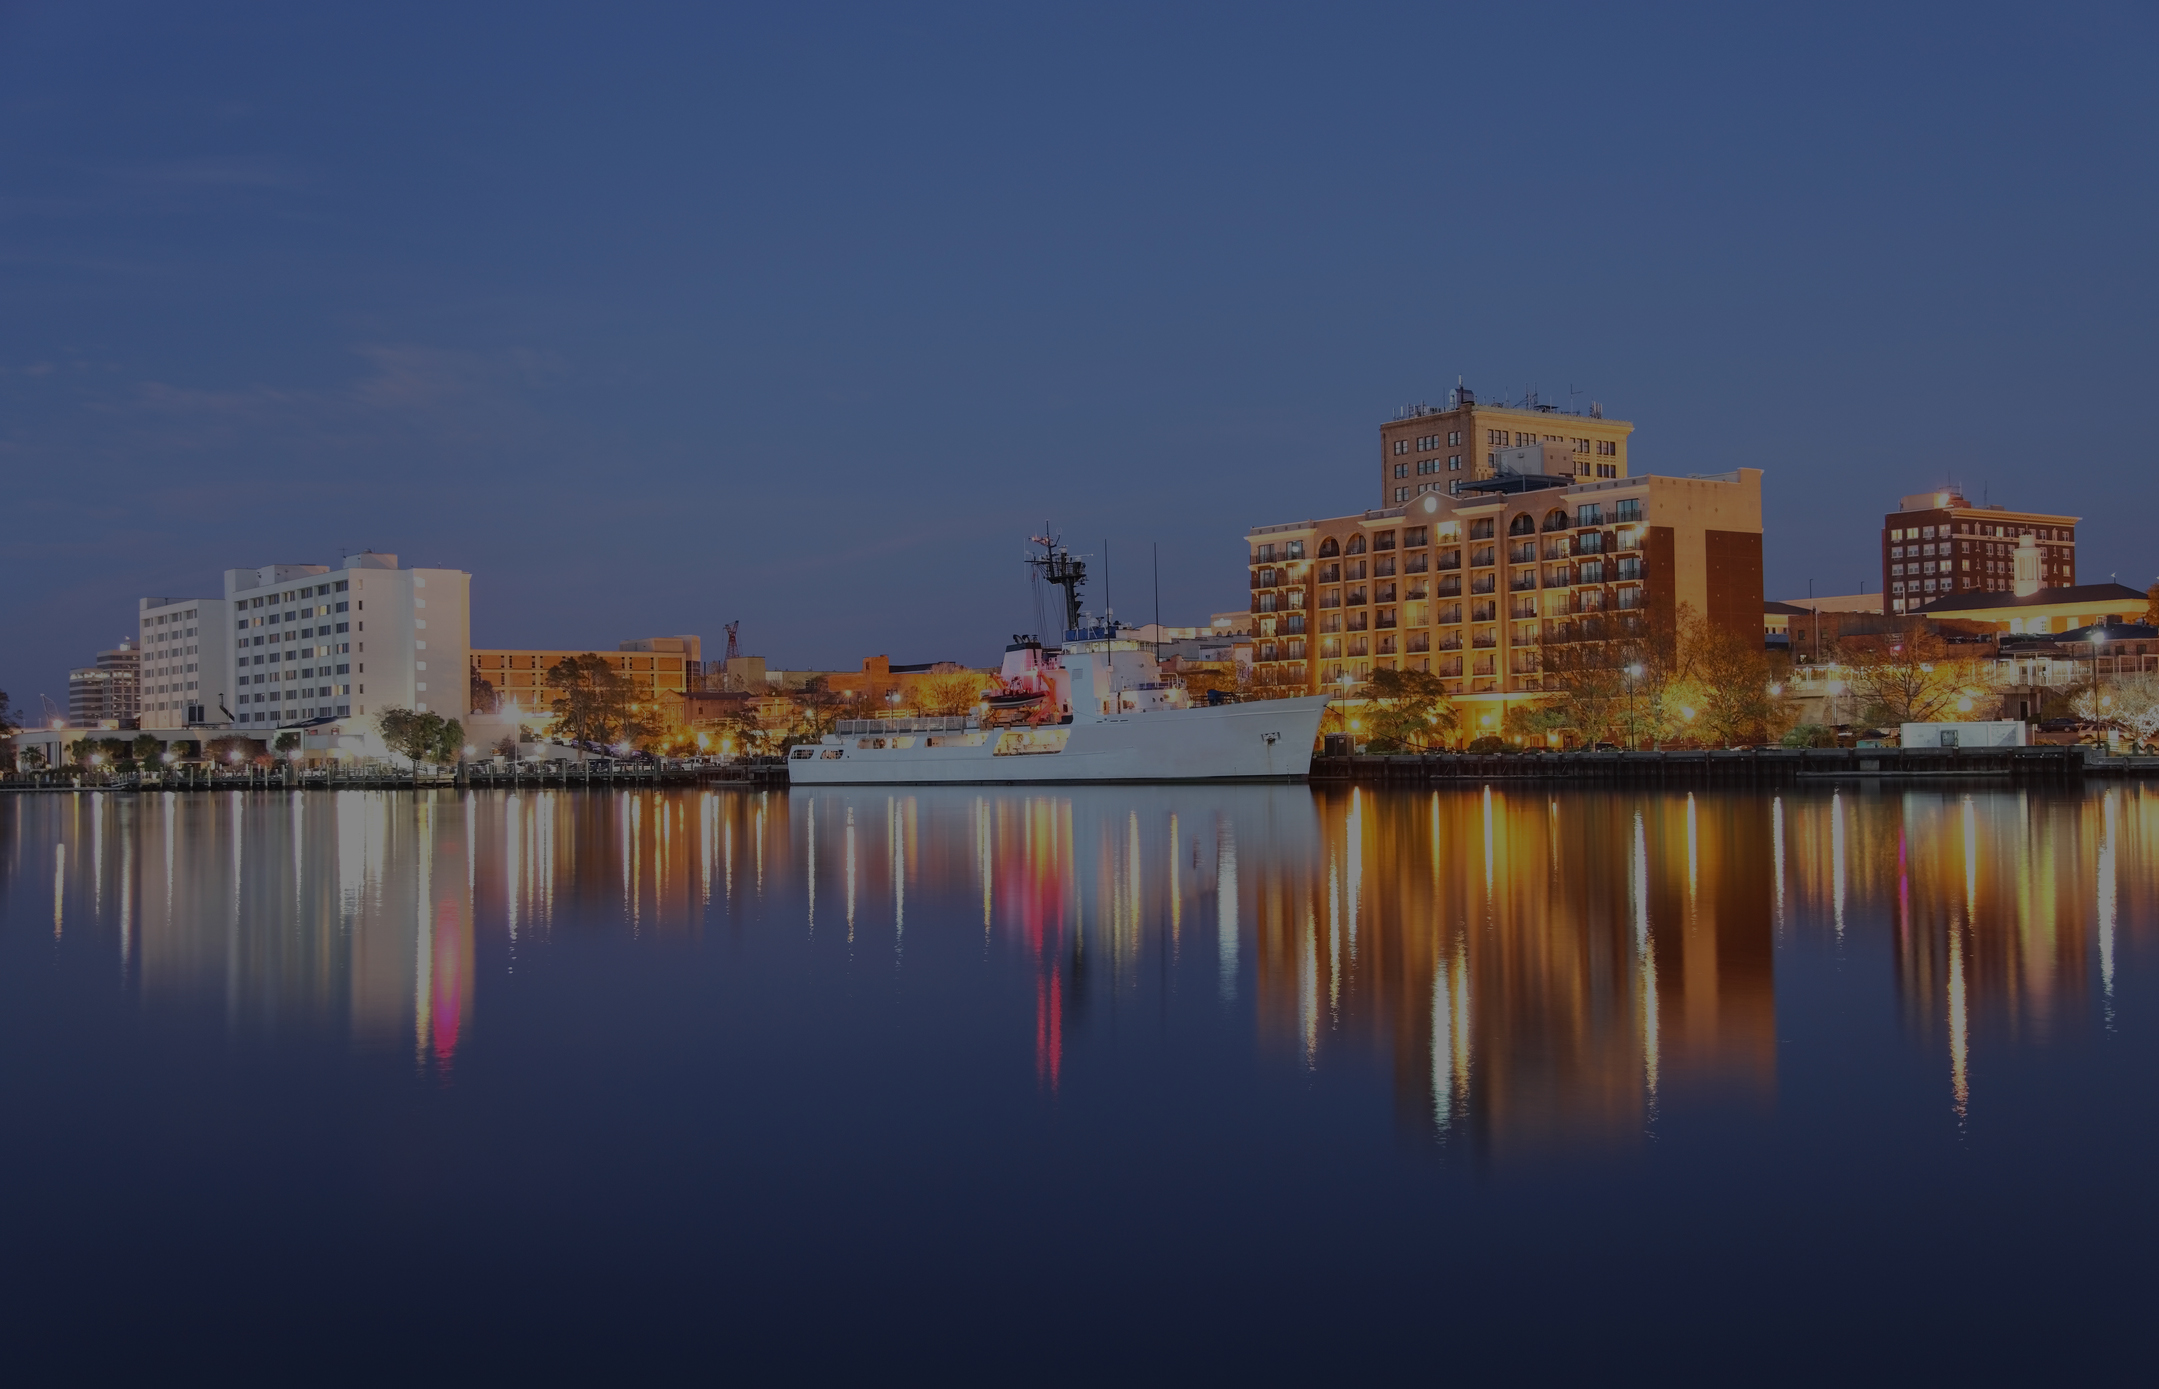 Downtown Wilmington, home of Grayson Cheek, a wilmington nc personal injury attorney and criminal defense lawyer